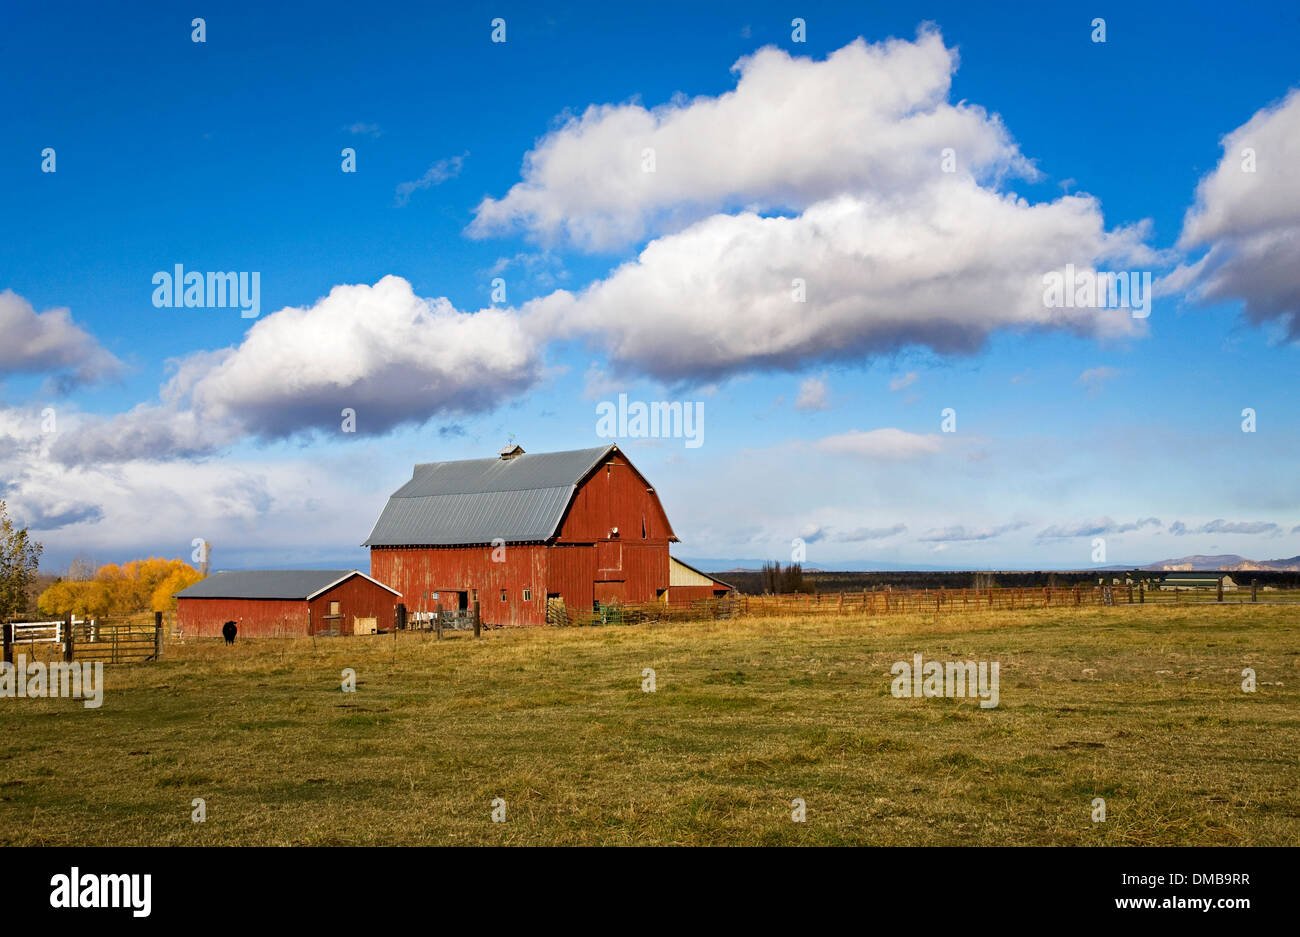 An old red barn and fluffy clouds on a farm in central Oregon. - Stock Image